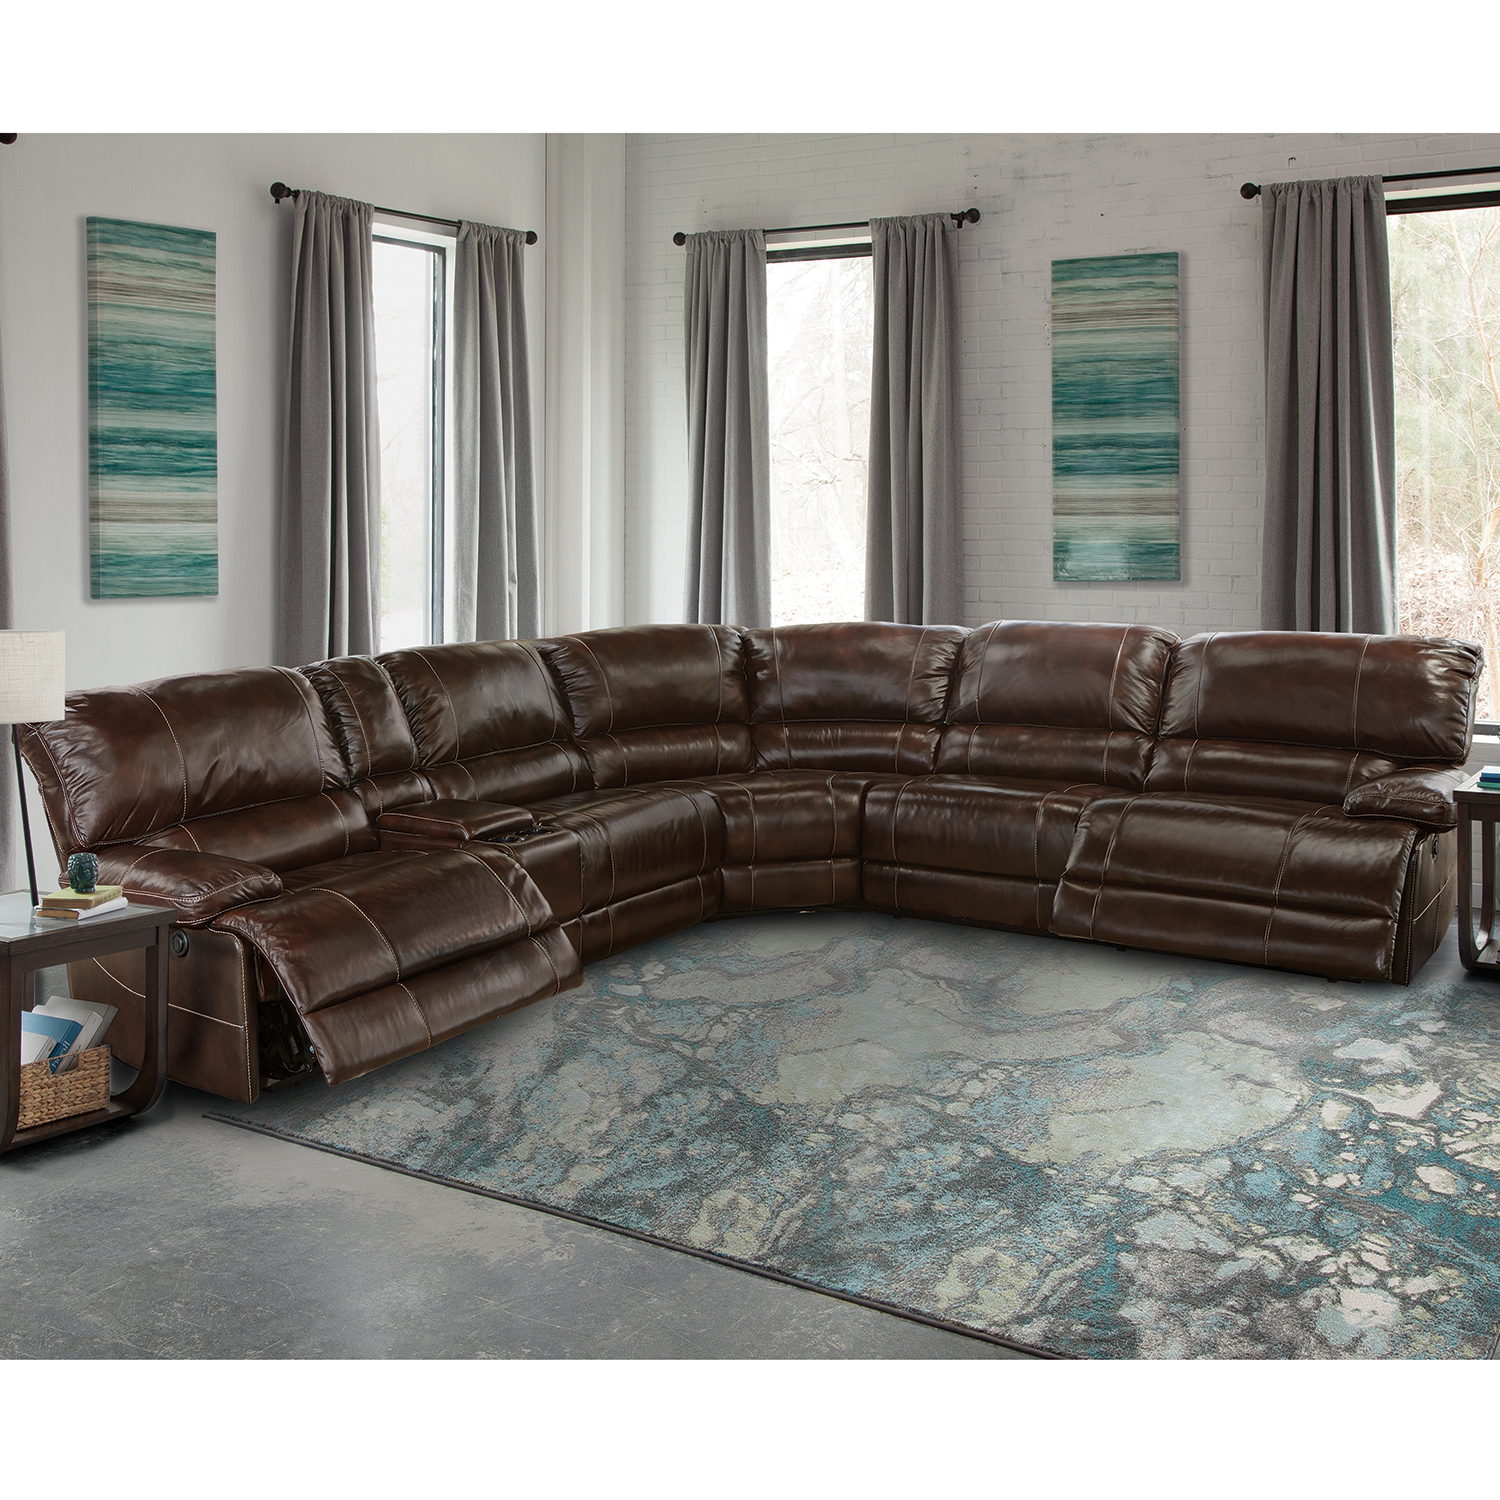 Summerbridge 6 Pc Leather Sectional Sofa – Sofa Design Ideas Throughout Best And Newest Travis Cognac Leather 6 Piece Power Reclining Sectionals With Power Headrest & Usb (View 10 of 20)